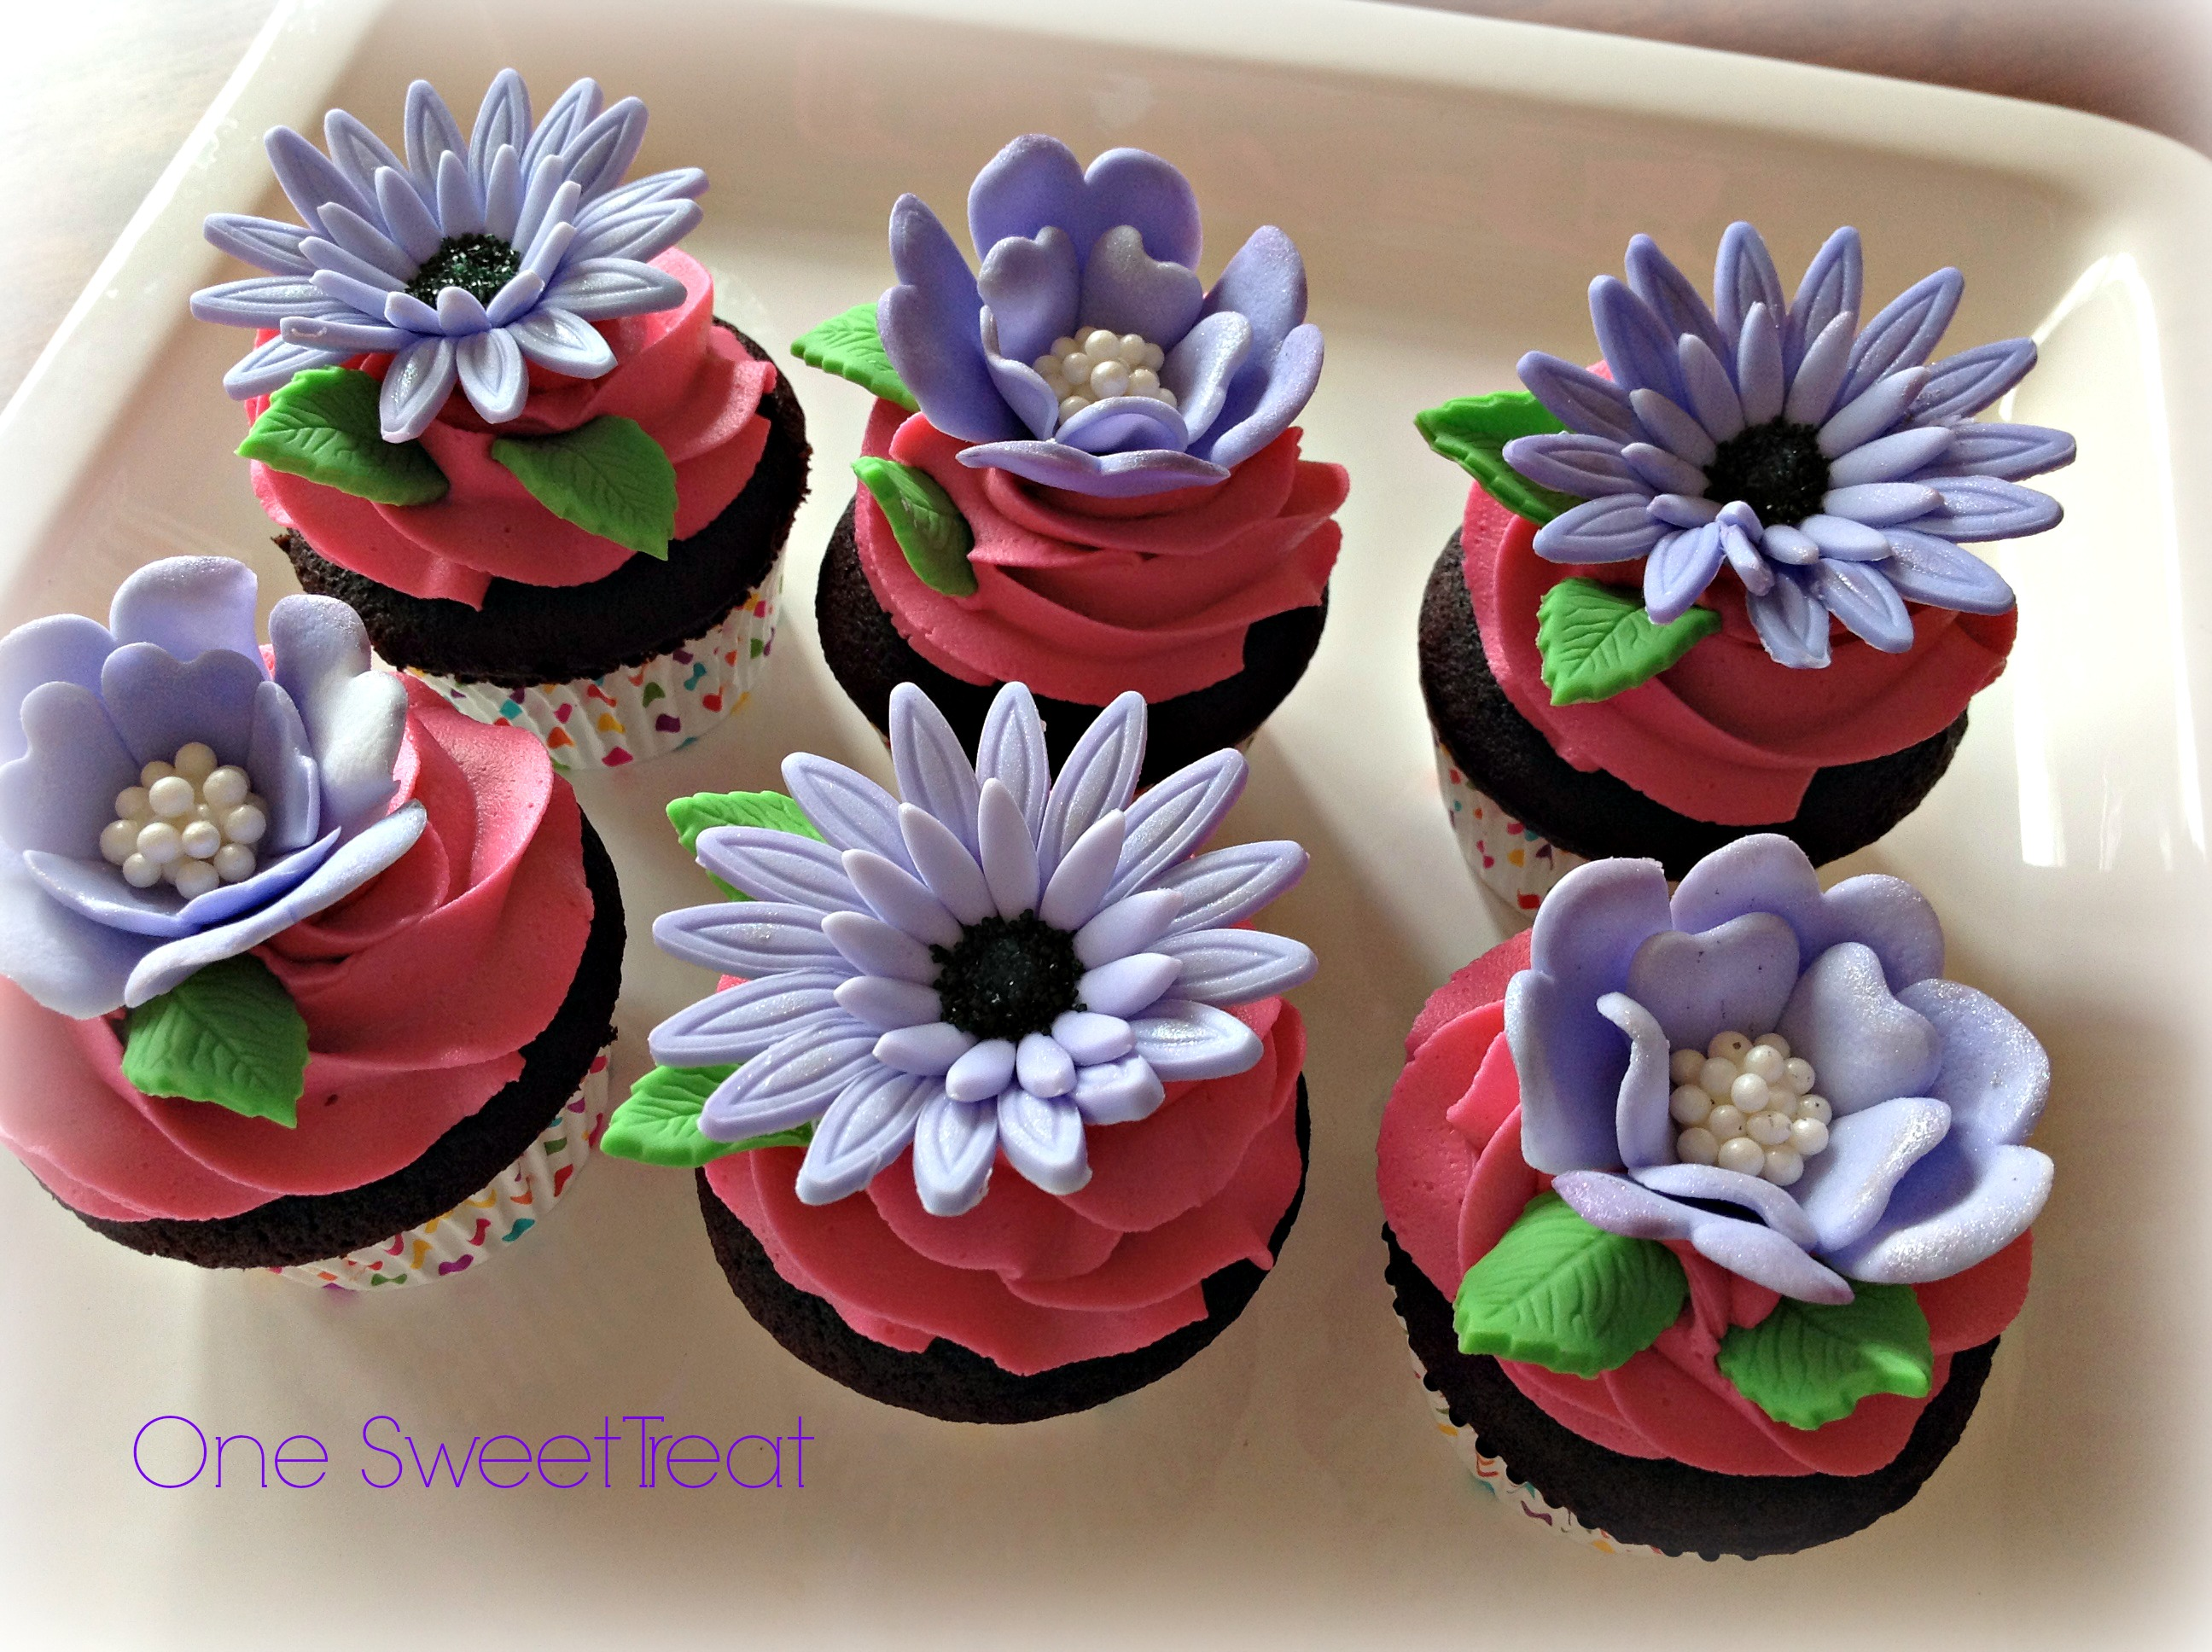 e Sweet Treat Flower Cupcakes